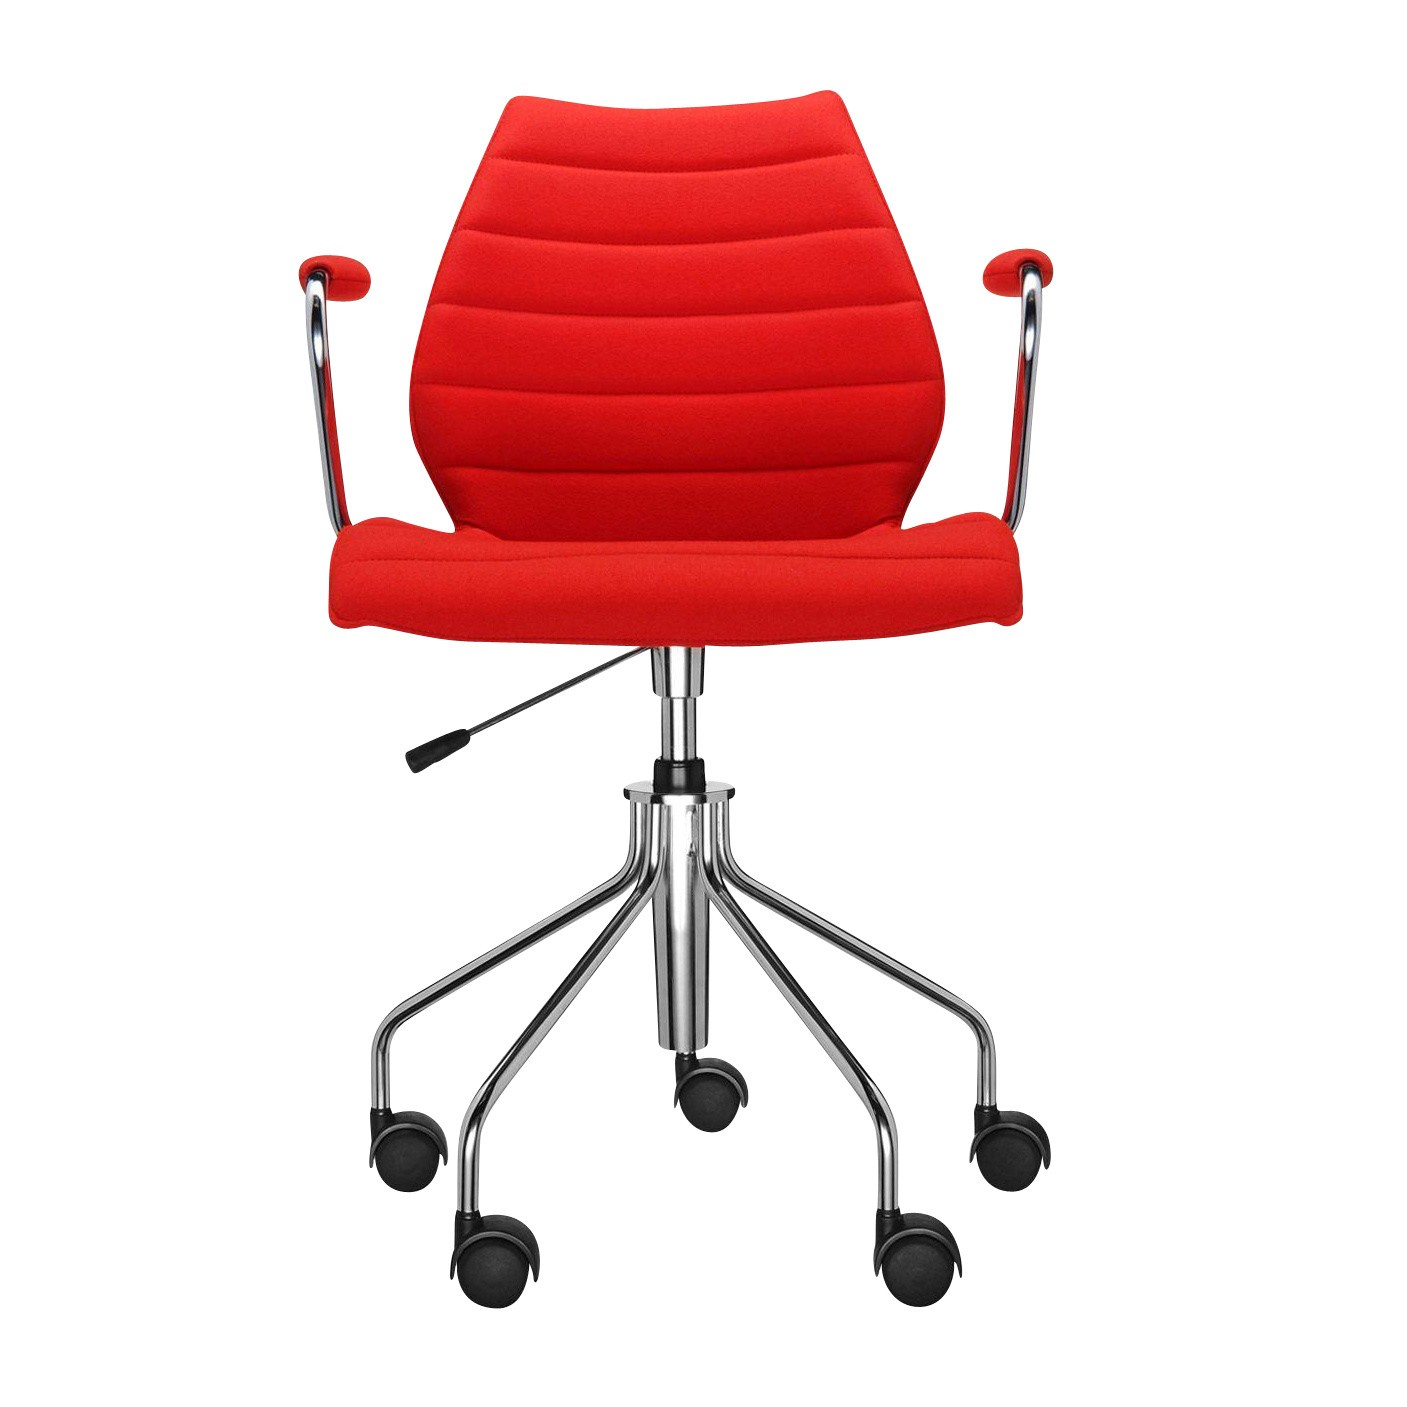 Red Desk Chair Maui Soft Office Chair With Armrests